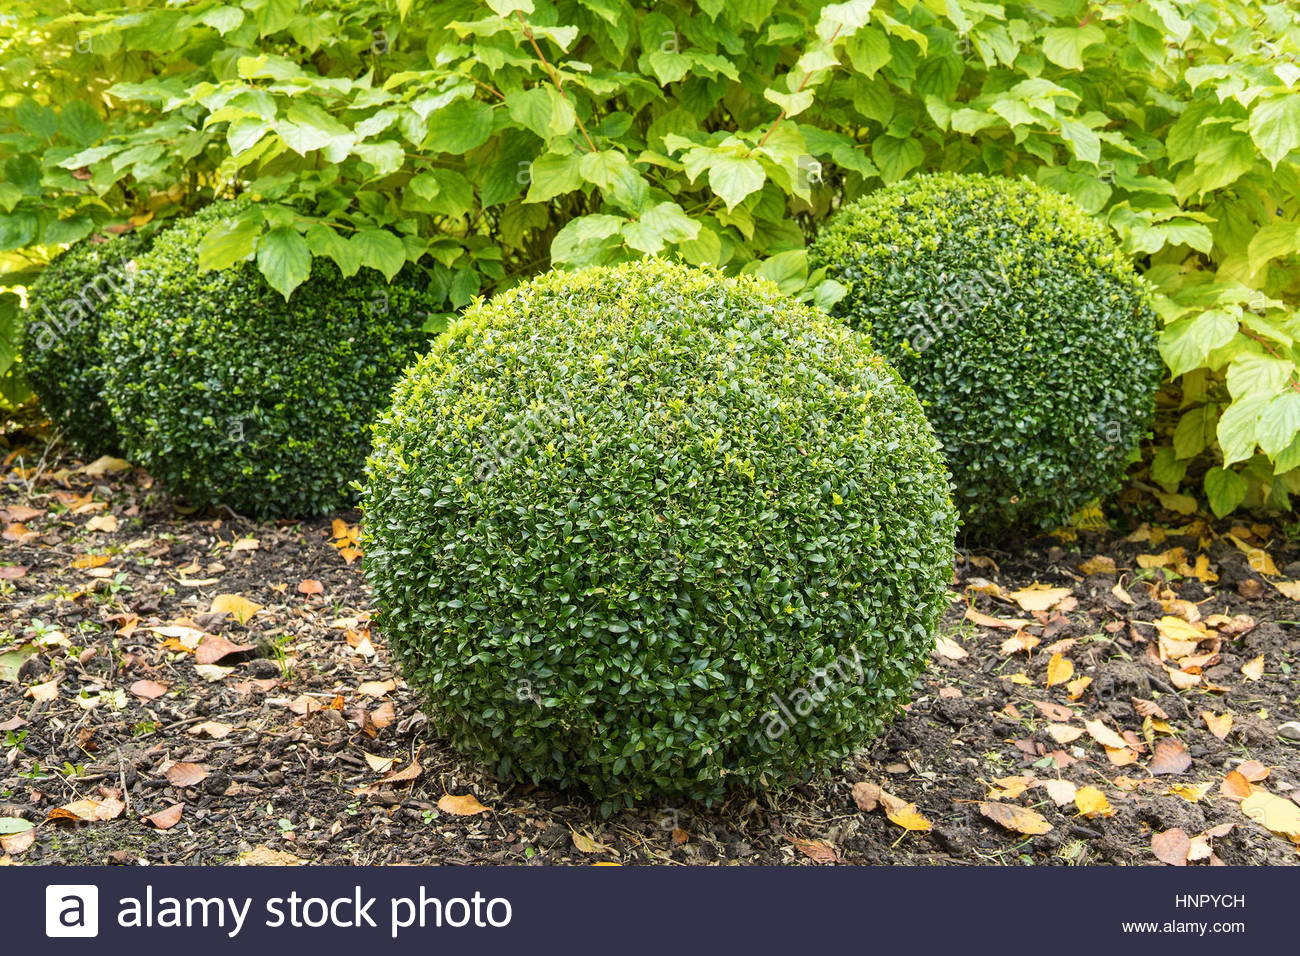 Buxus Sempervirens Topiary Stock Photos & Buxus